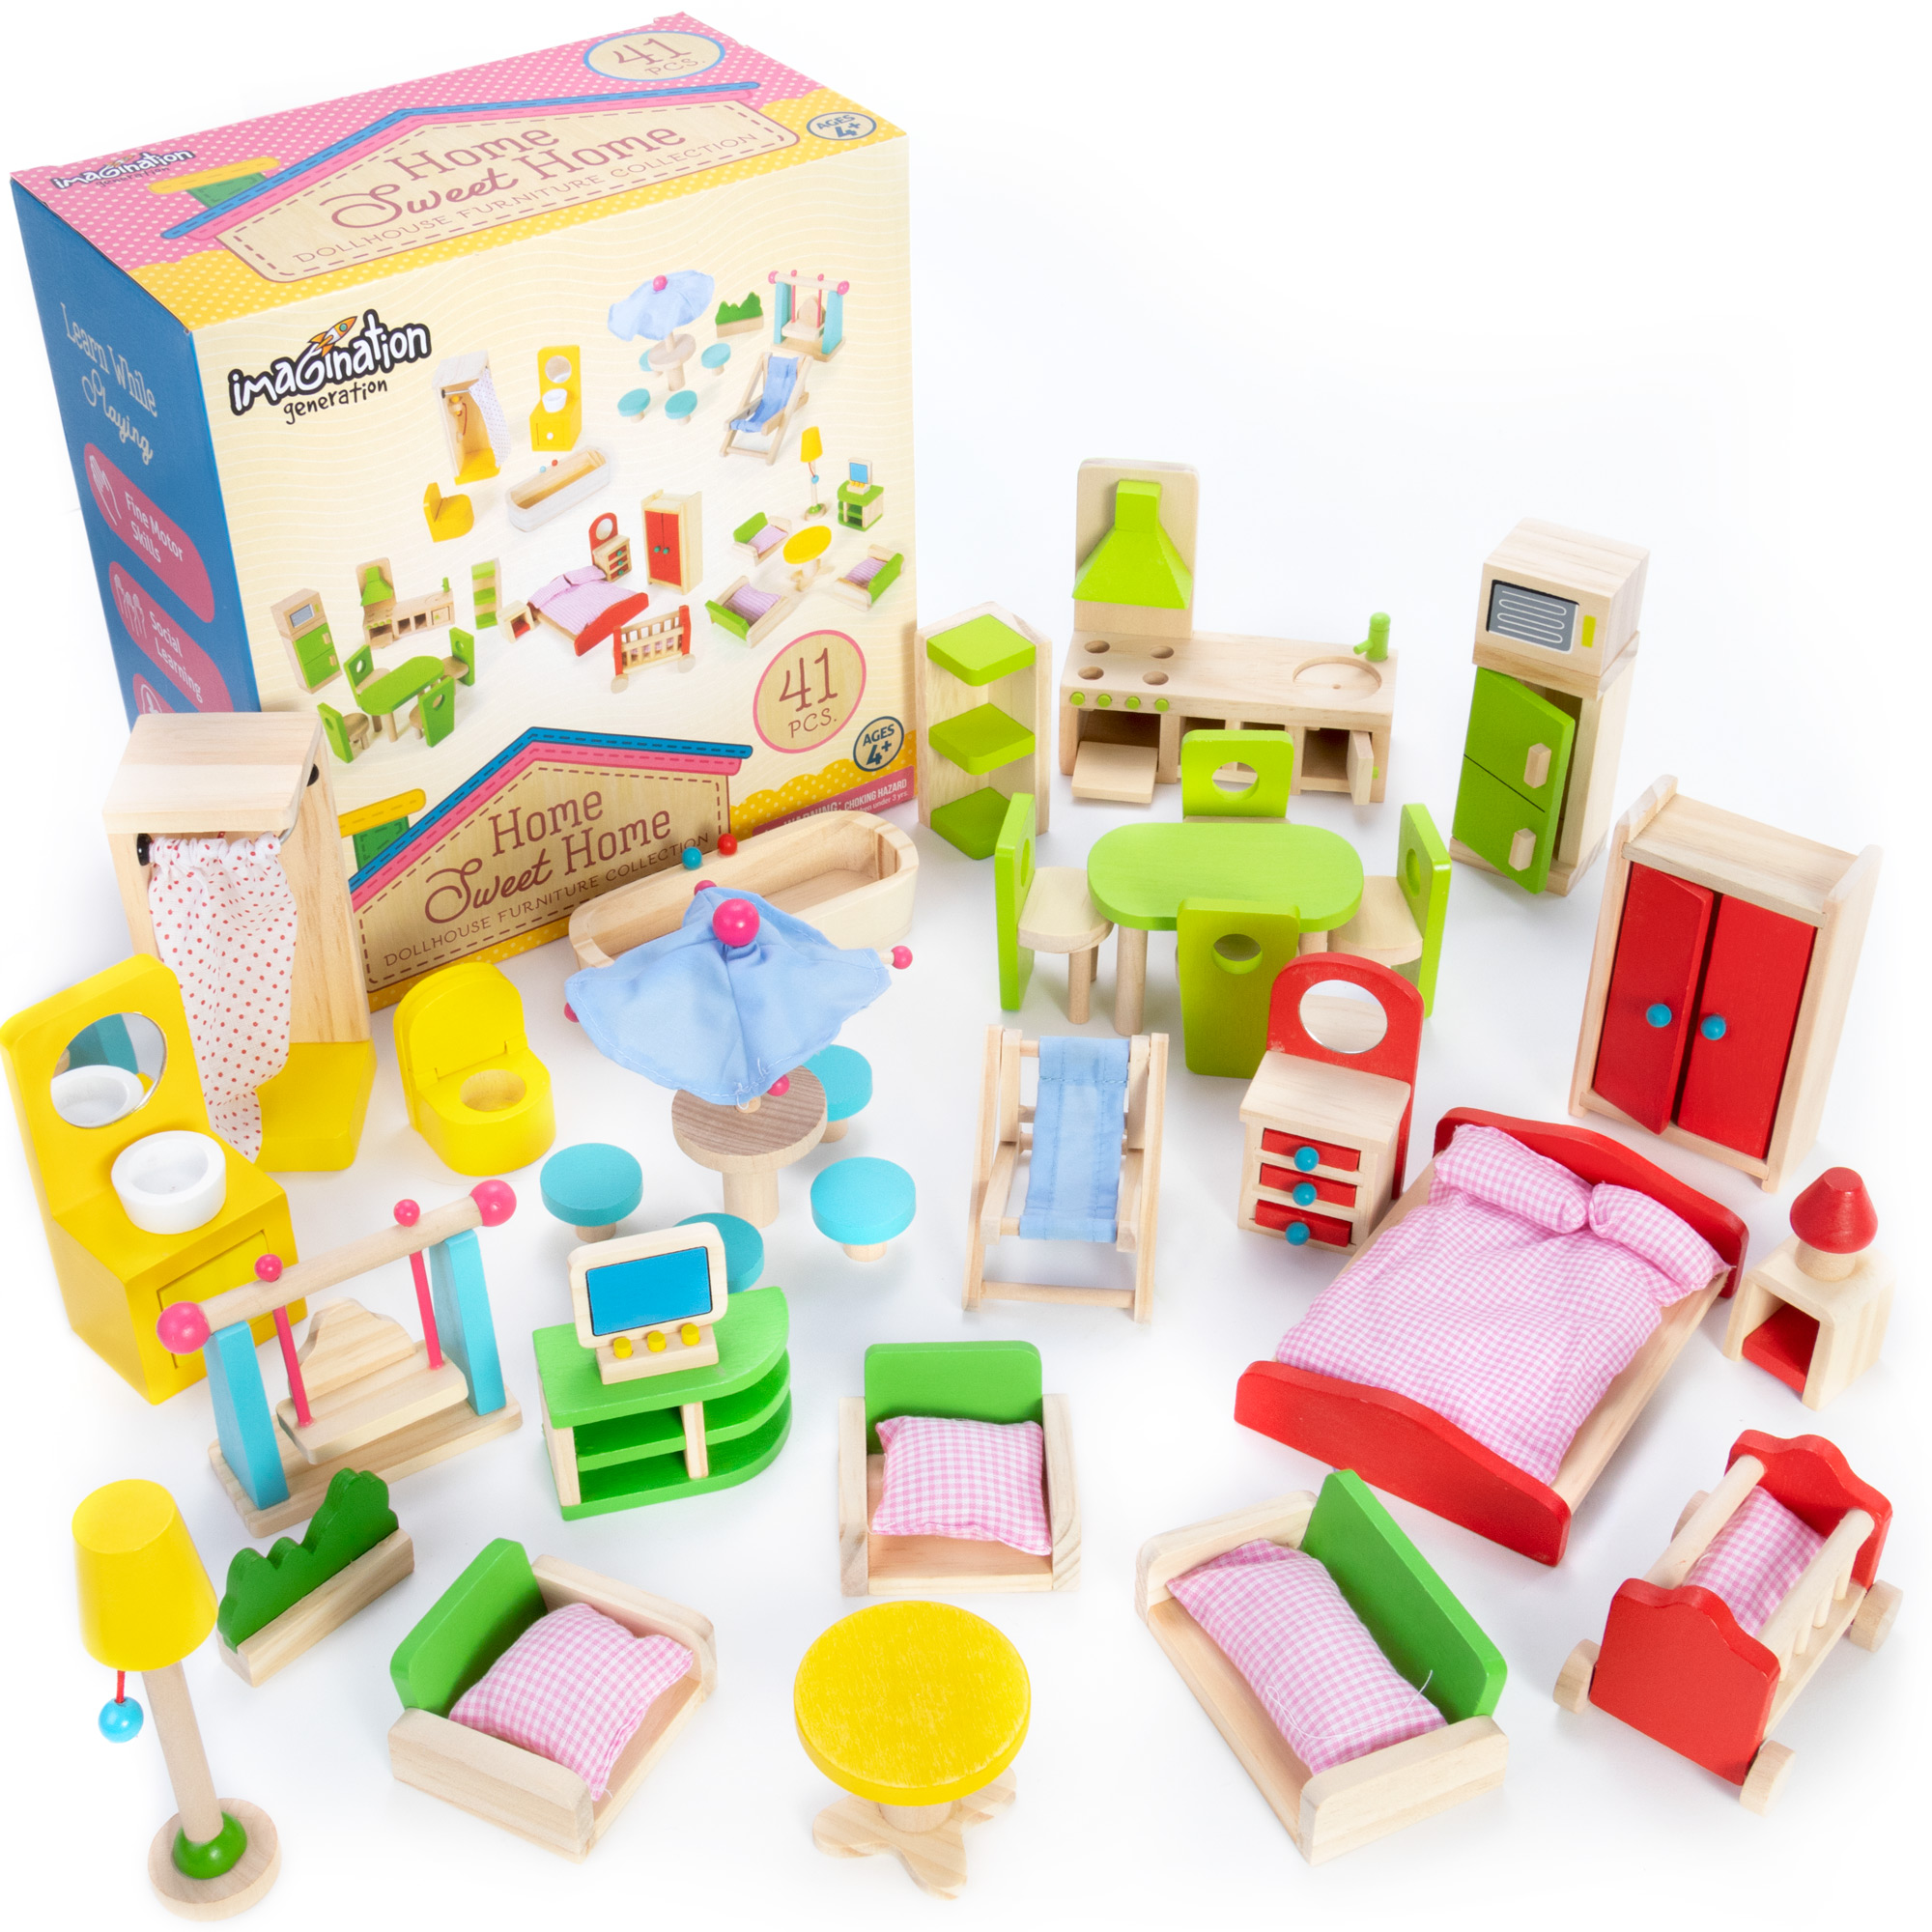 Home Sweet Home Dollhouse Furniture Collection, 41 pcs.